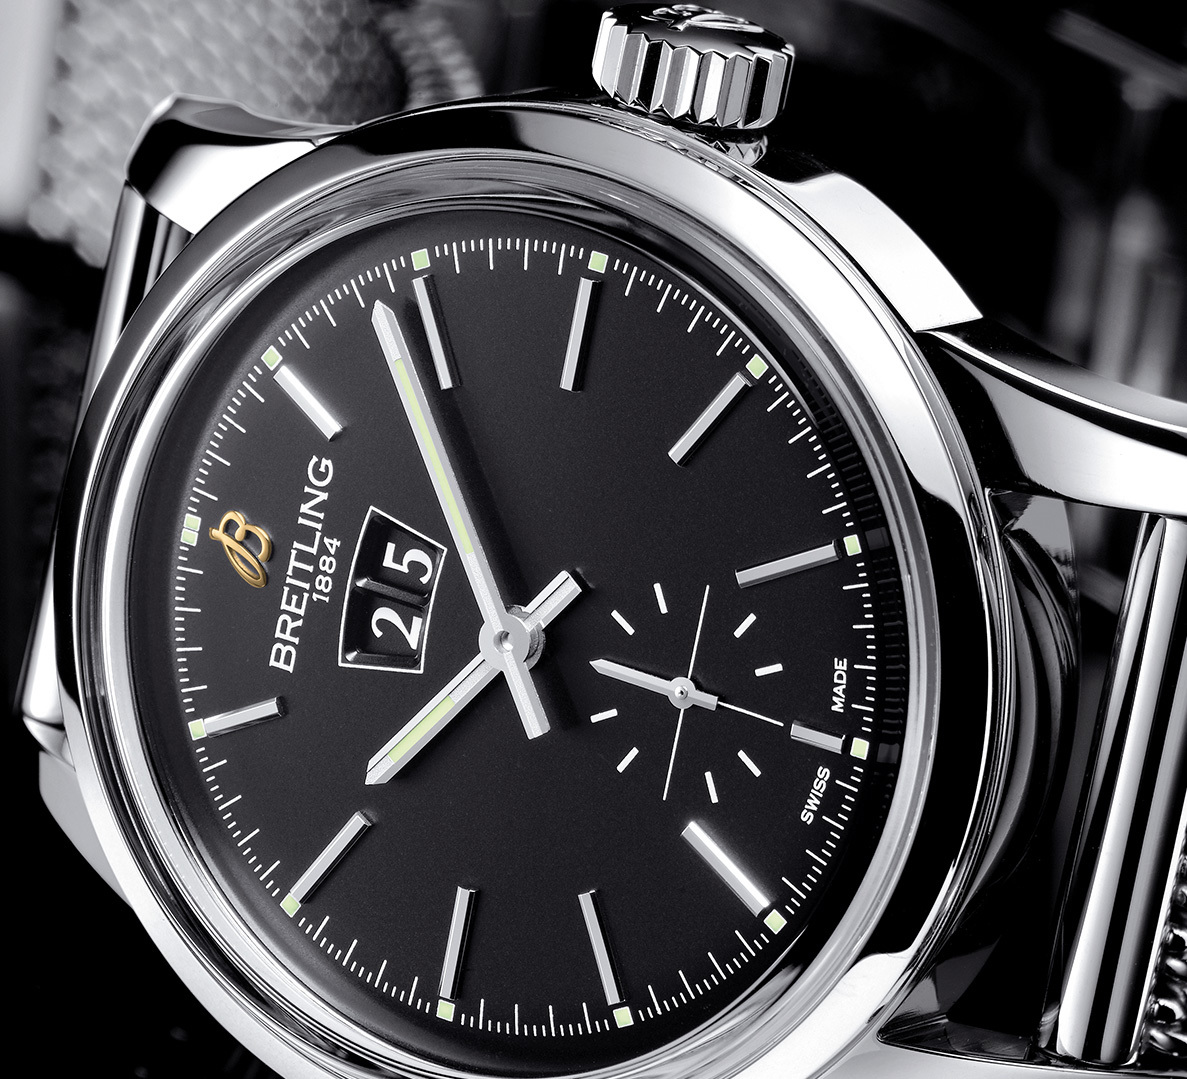 Breitling Transocean 38 - Dial